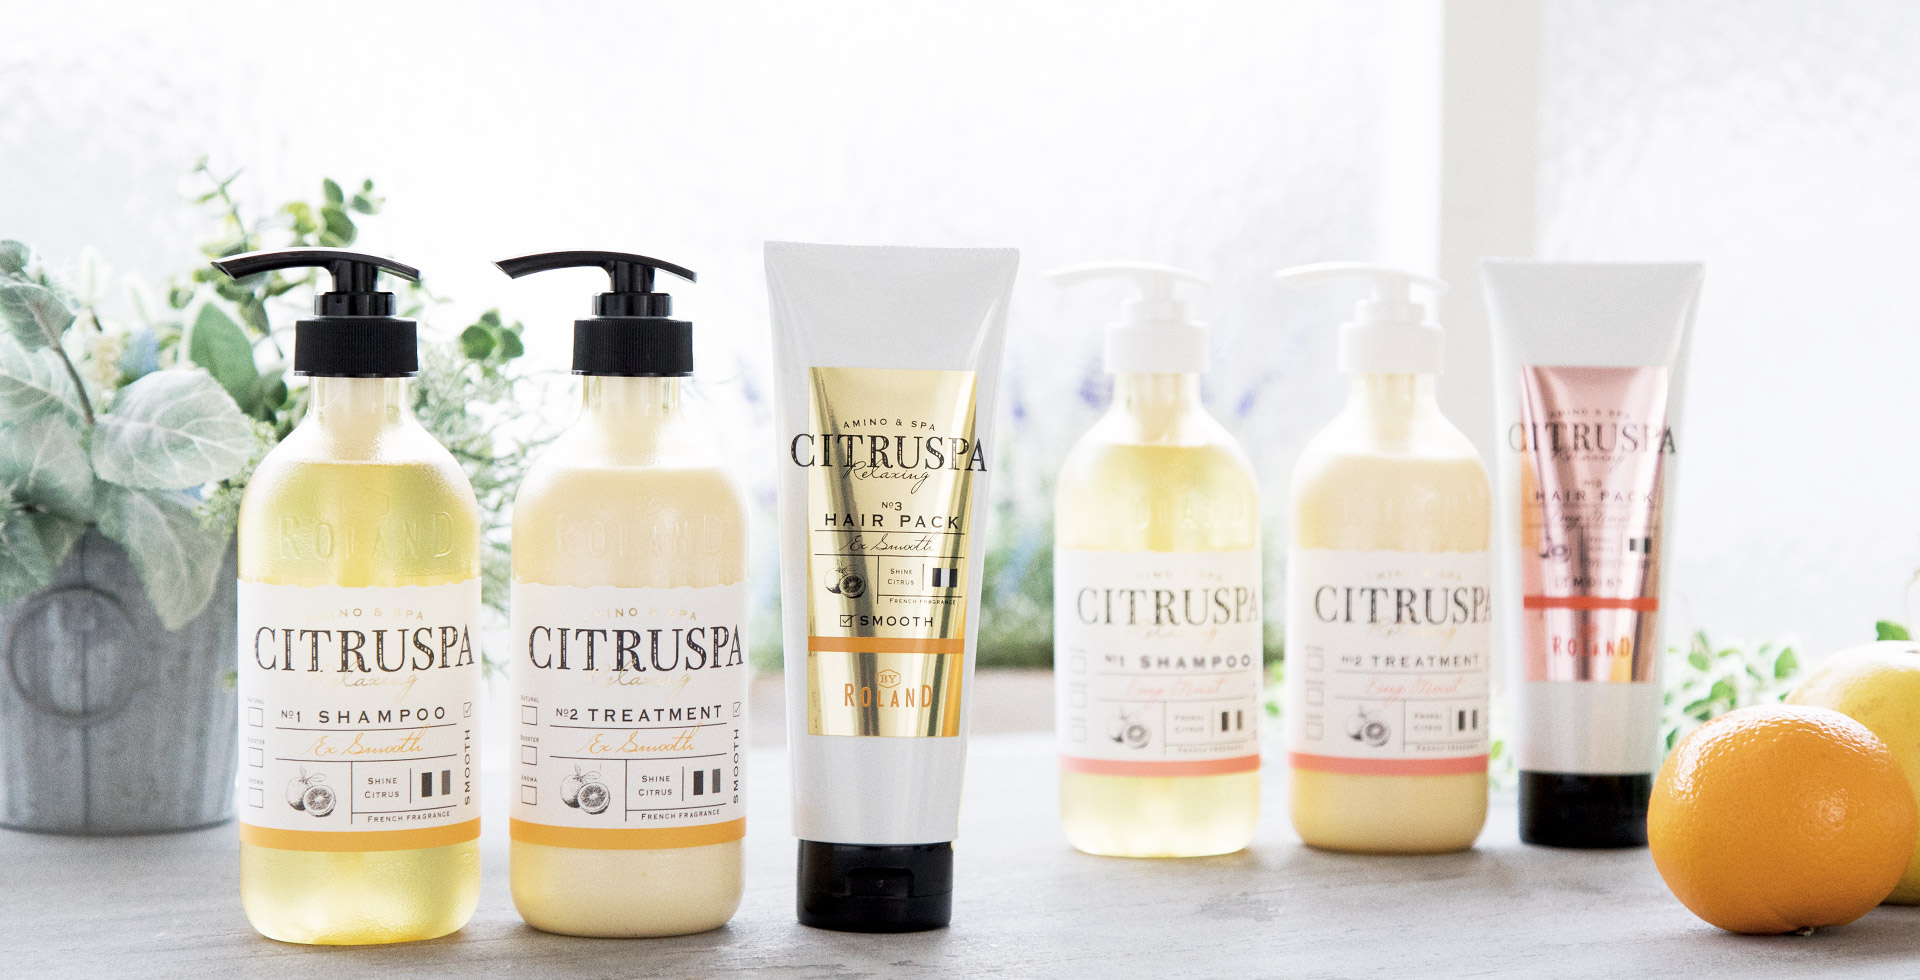 CITRUSPA MV